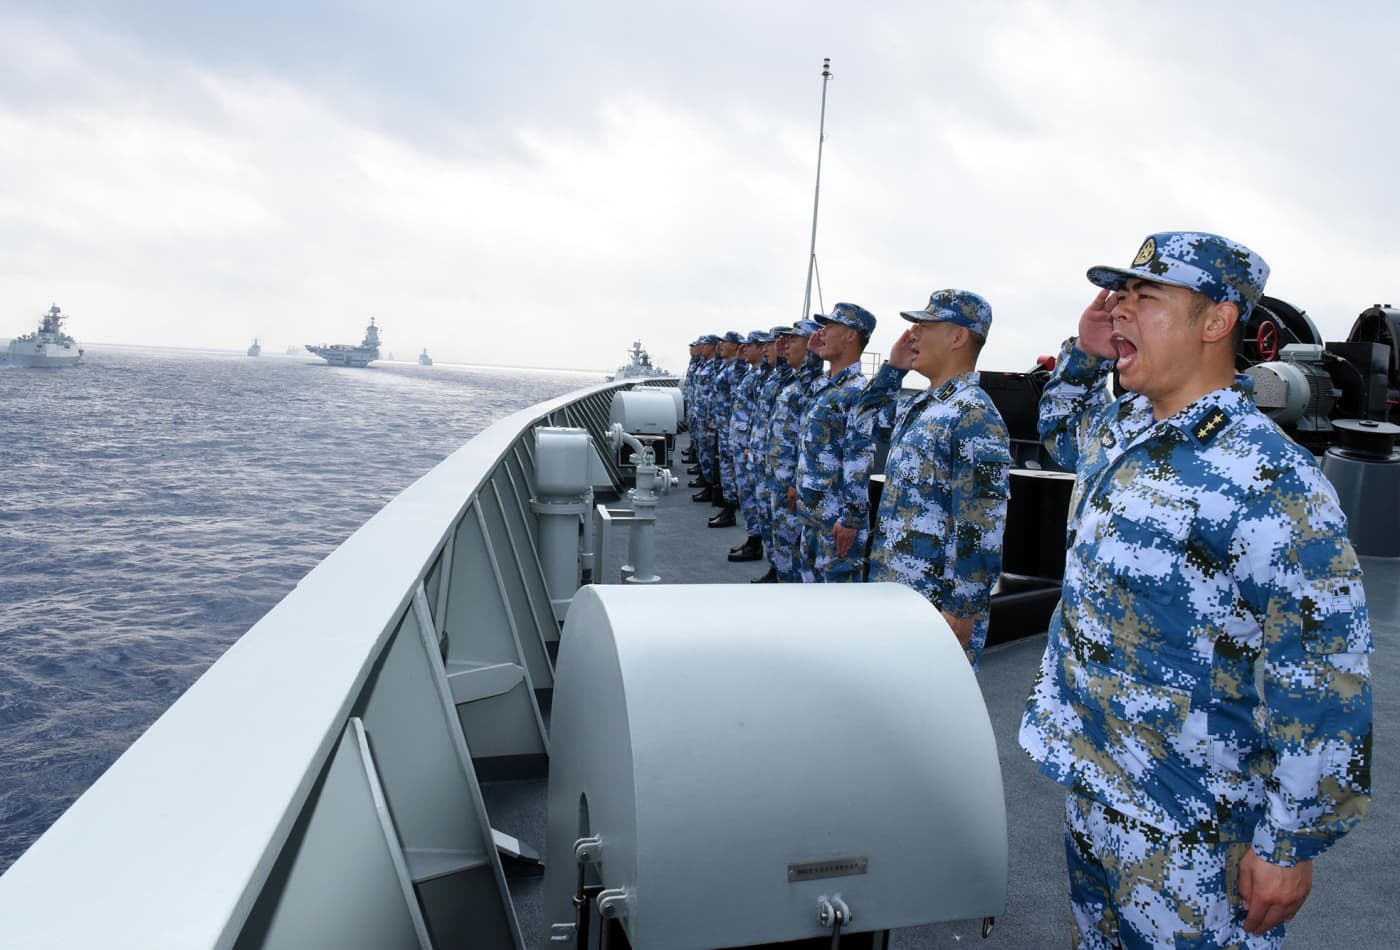 China quietly installed missile systems on strategic Spratly Islands in hotly contested South China Sea